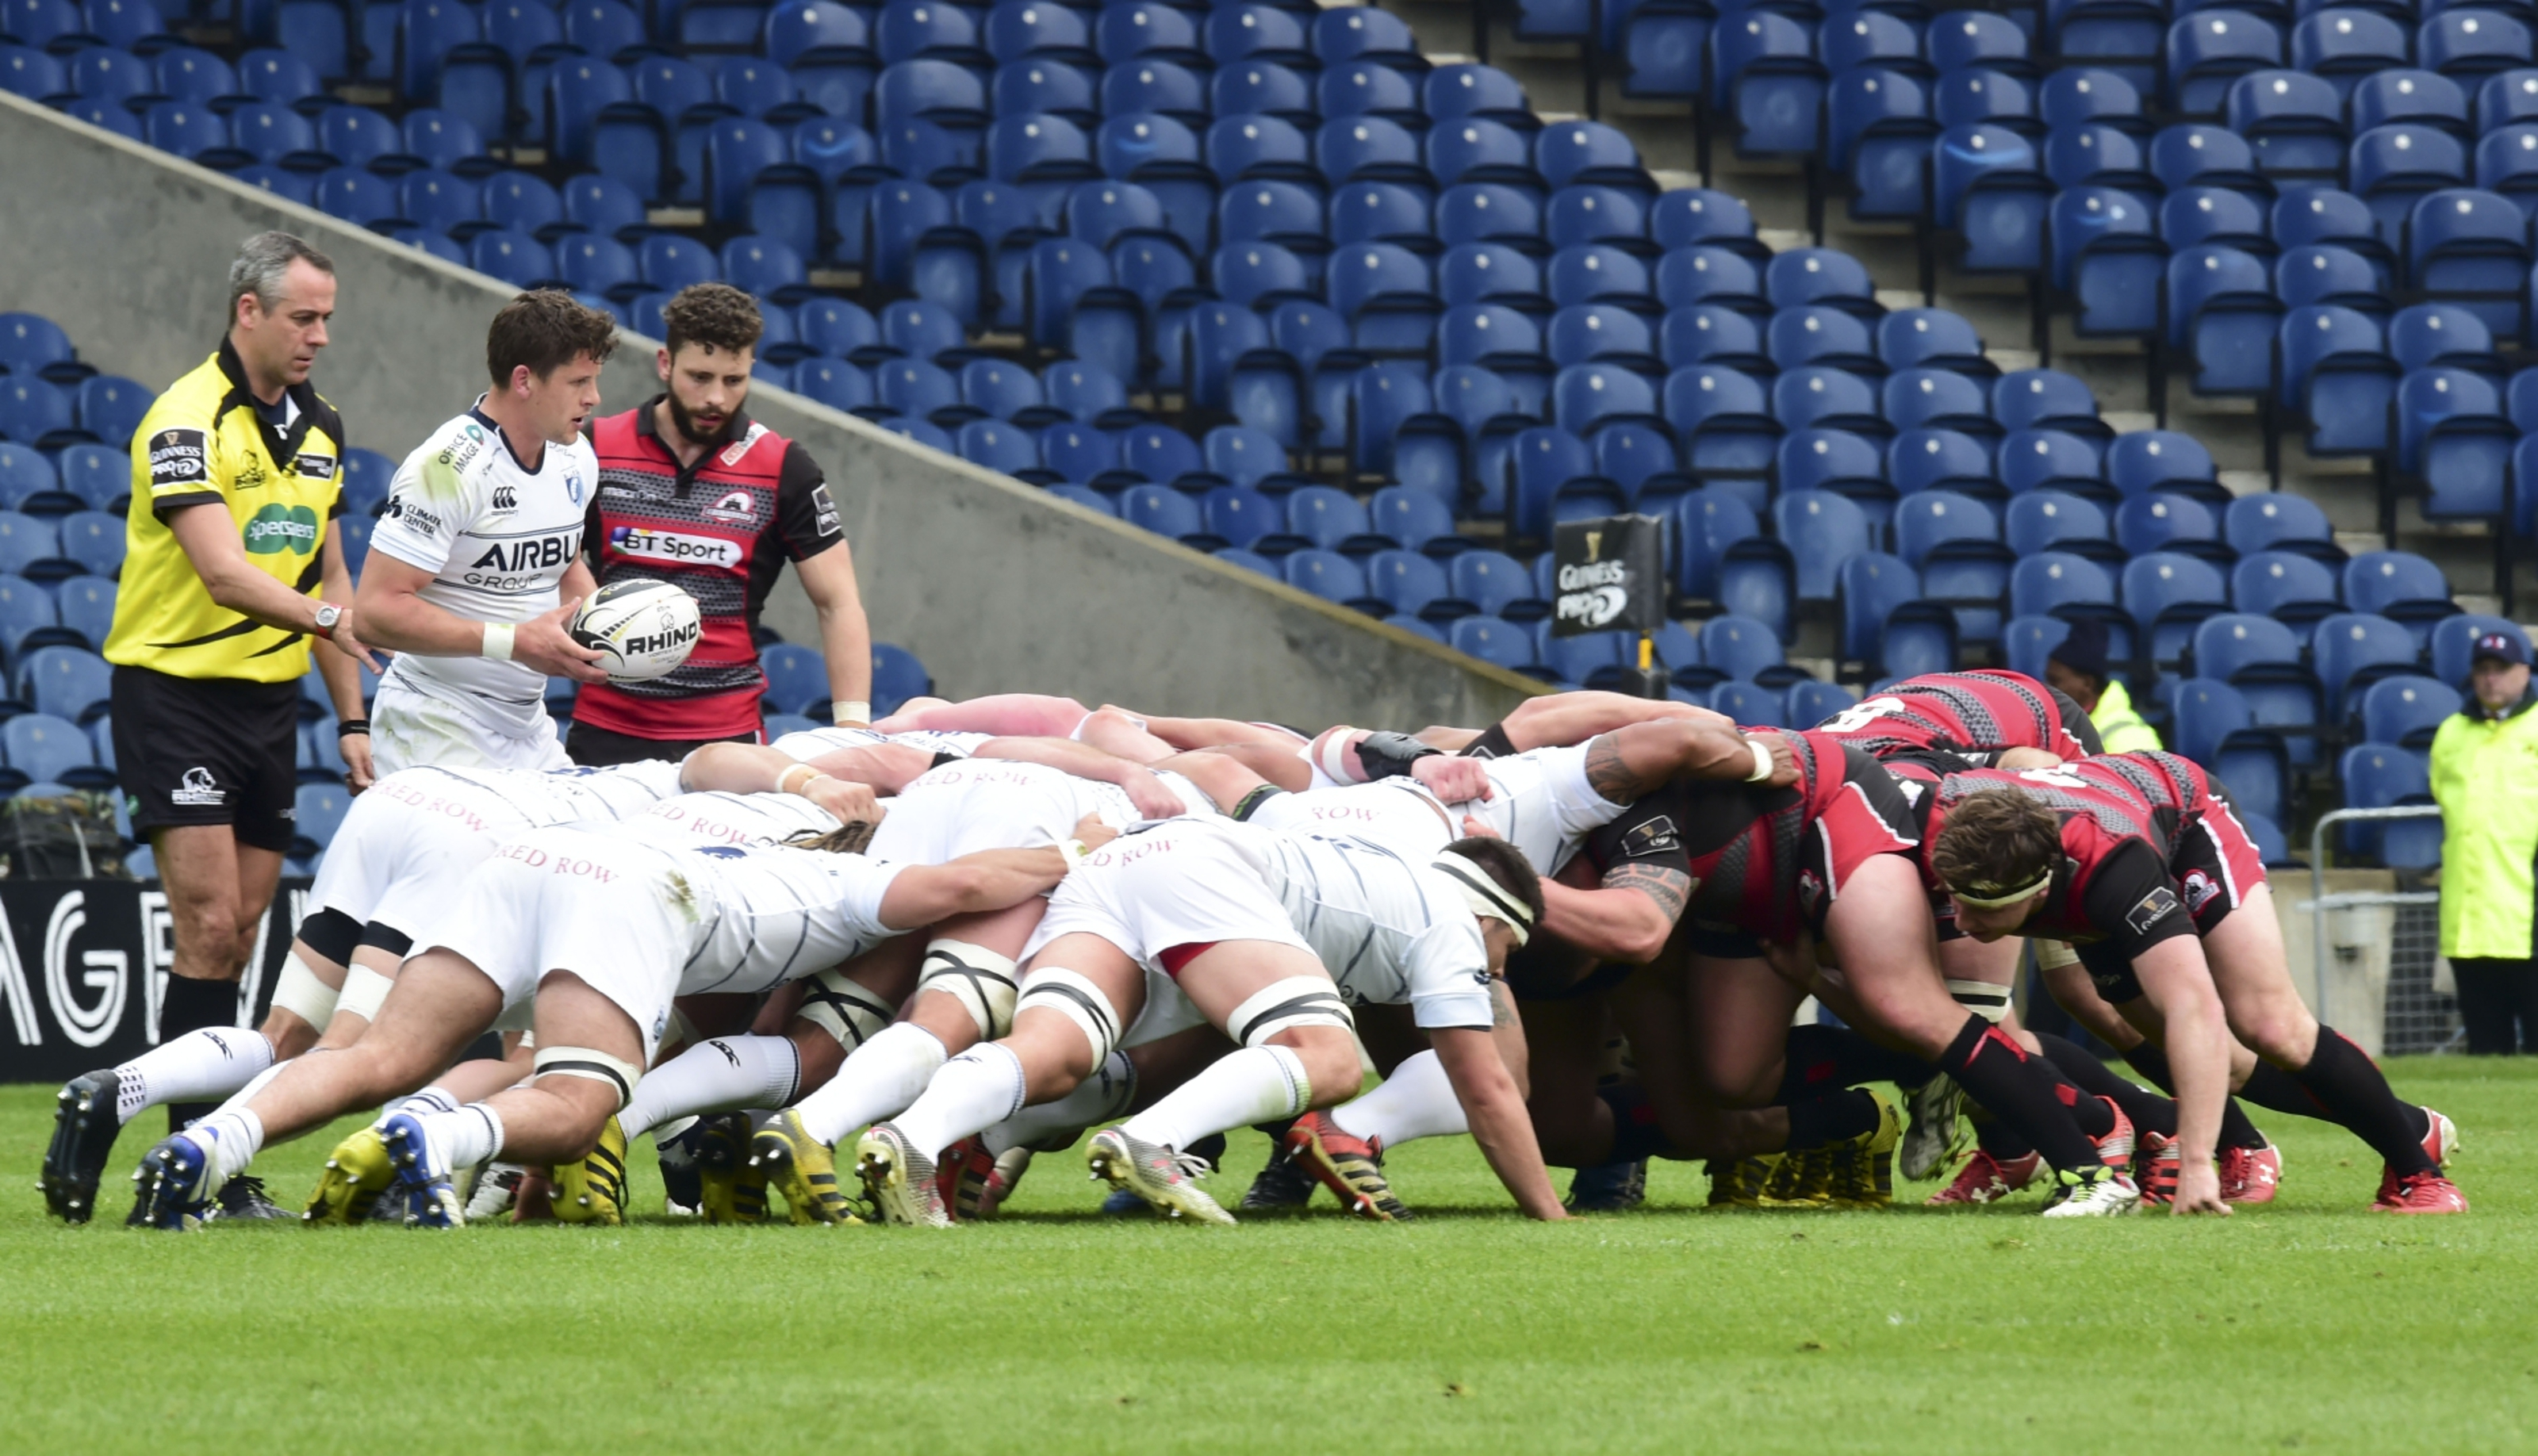 Edinburgh are set to leave the masses of empty seats at BT Murrayfield behind them and move to Myreside.